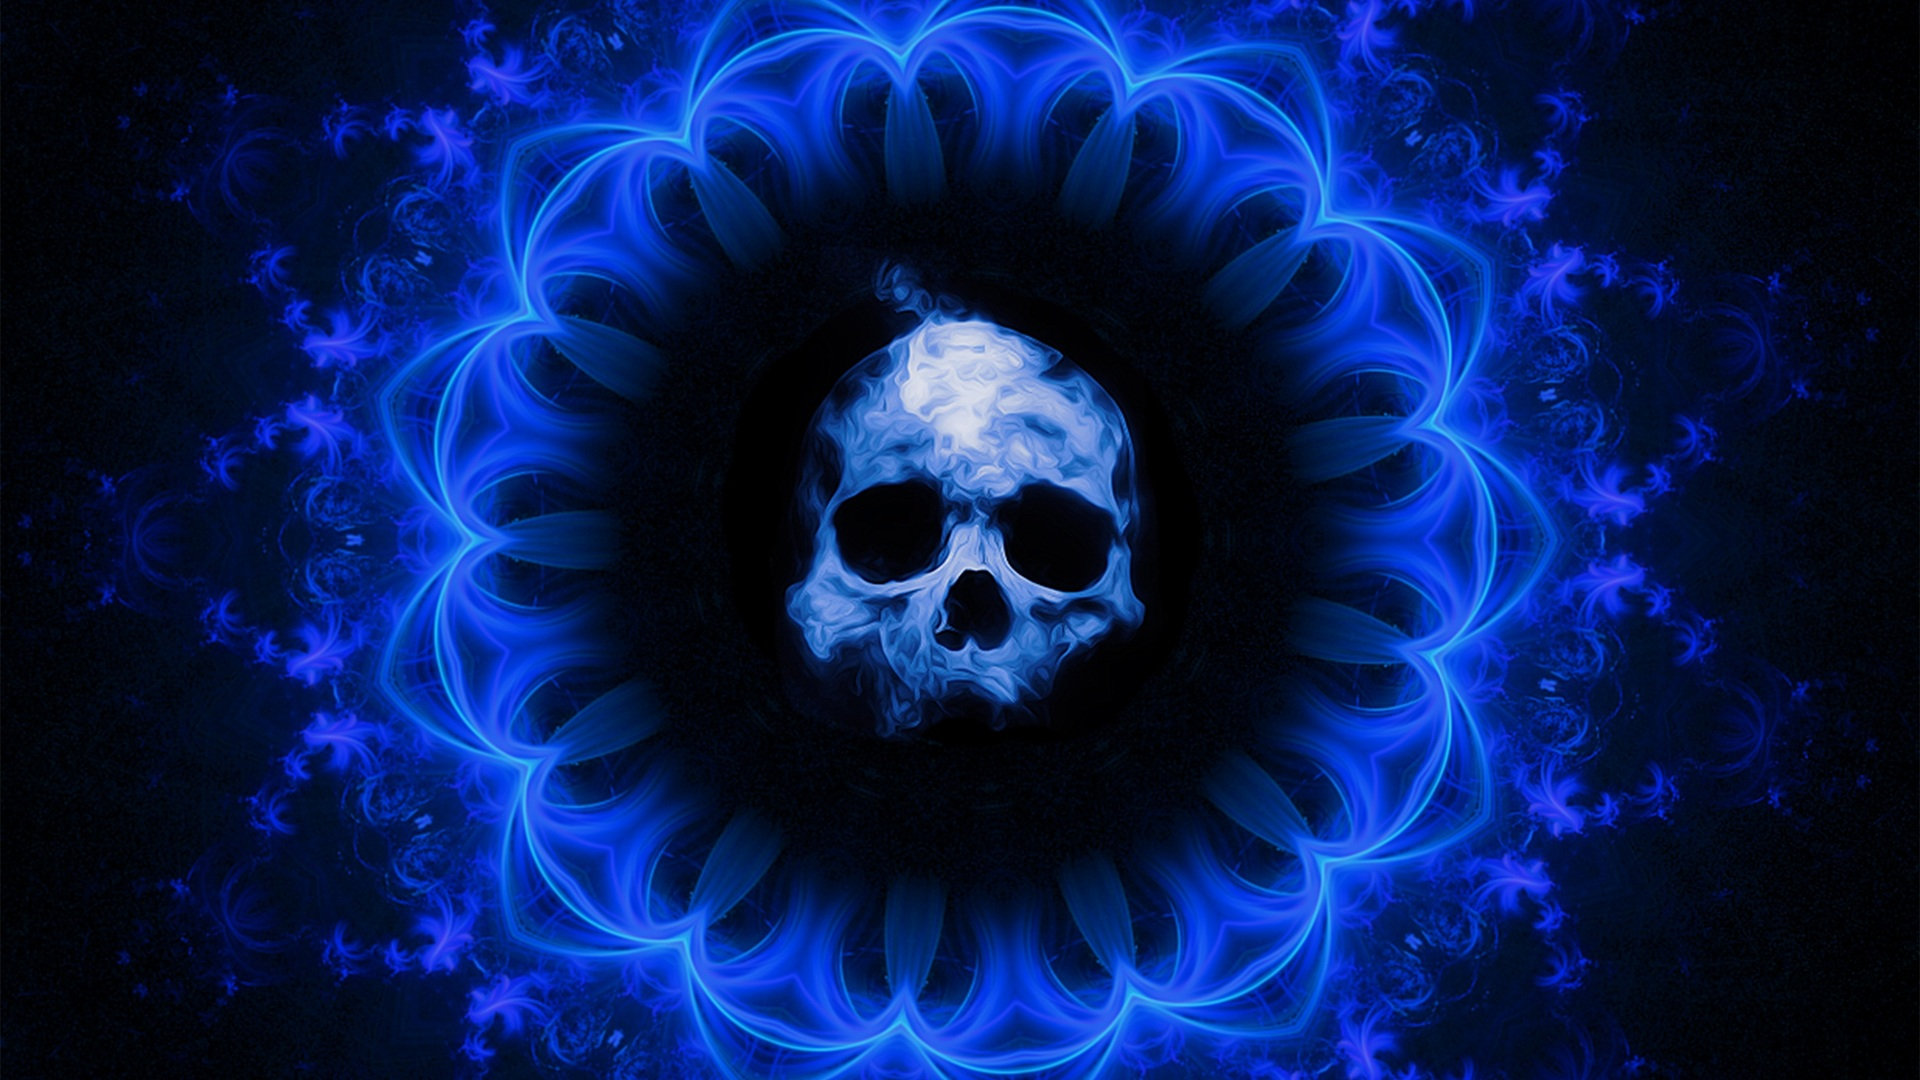 1920x1080 Skull Dark Blue Gothic Fantasy Laptop Full Hd 1080p Hd 4k Wallpapers Images Backgrounds Photos And Pictures